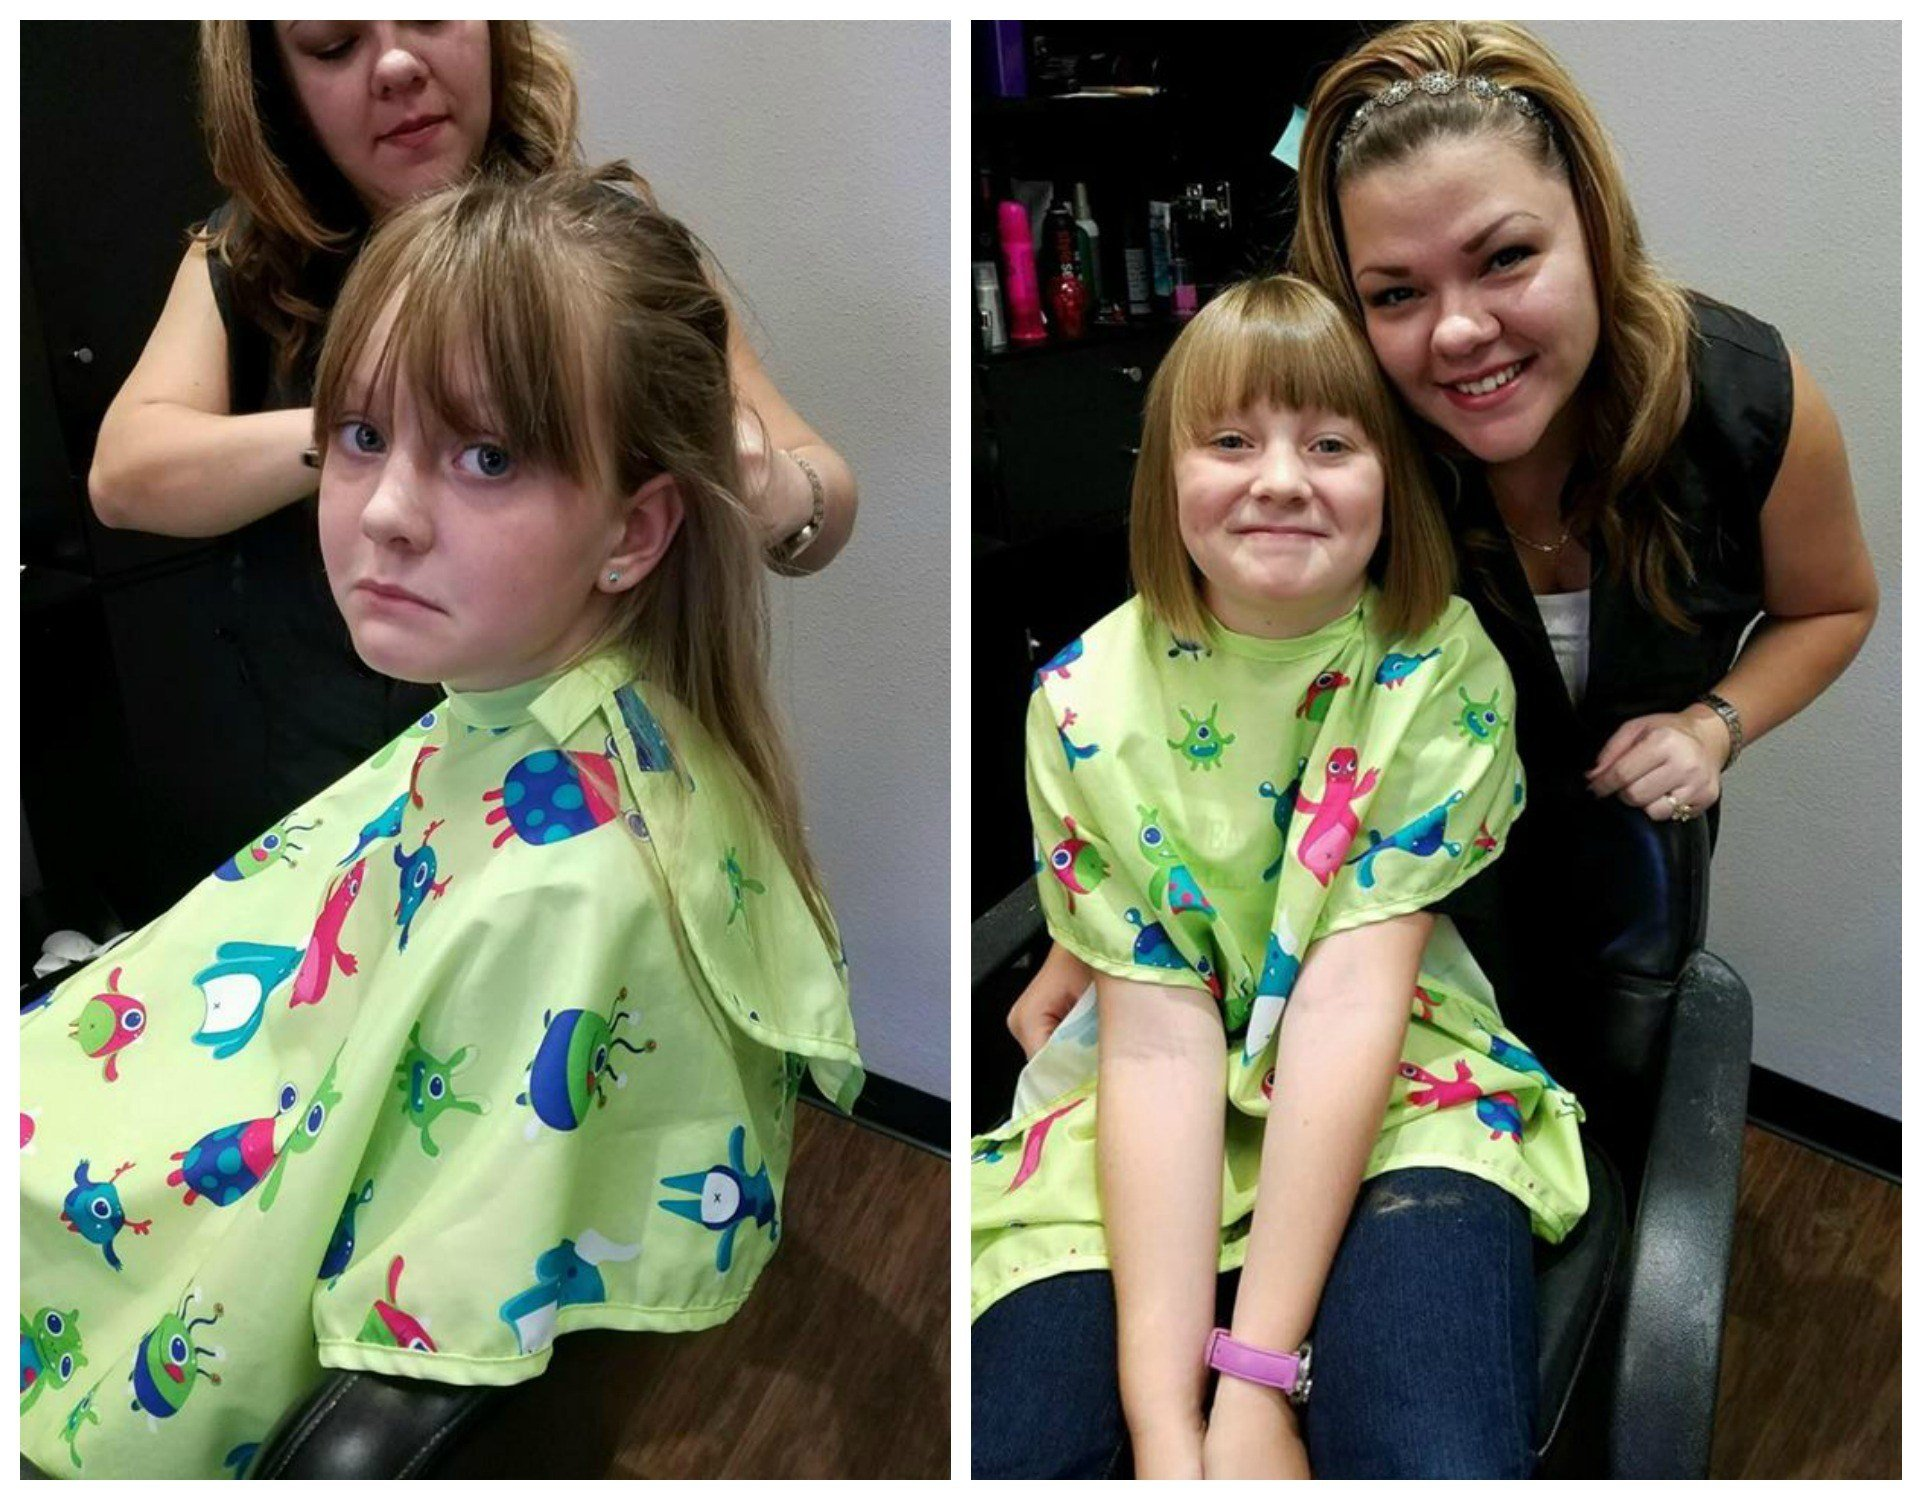 Audreyana Lincoln, 9, before and after (right) cutting her hair to donate to childhood cancer patients through 'Wigs For Kids'